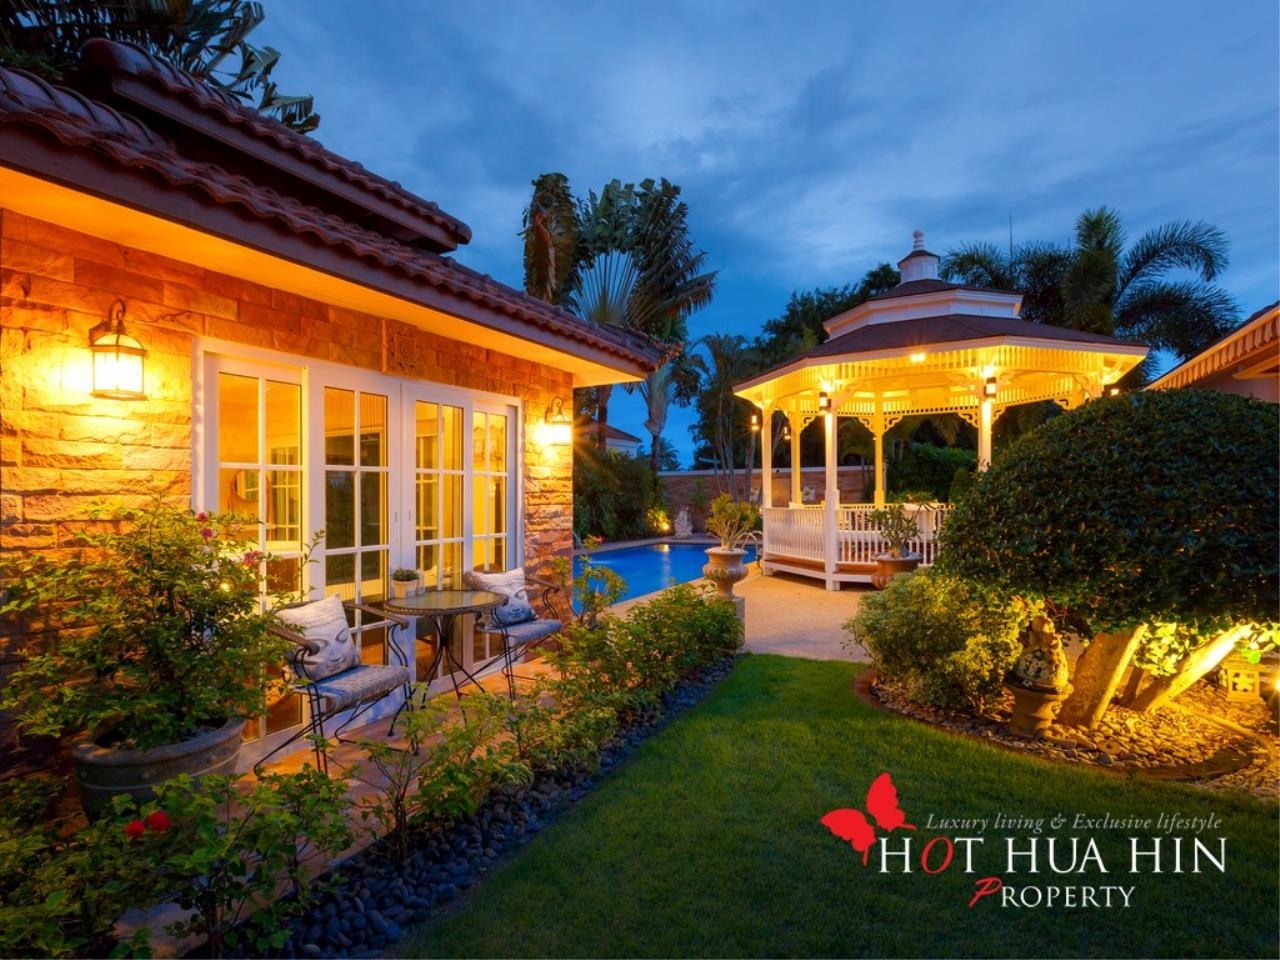 Hot Hua Hin Co. Ltd. Agency's Well Built Home With Stunning Gardens And Two Full Kitchens 39